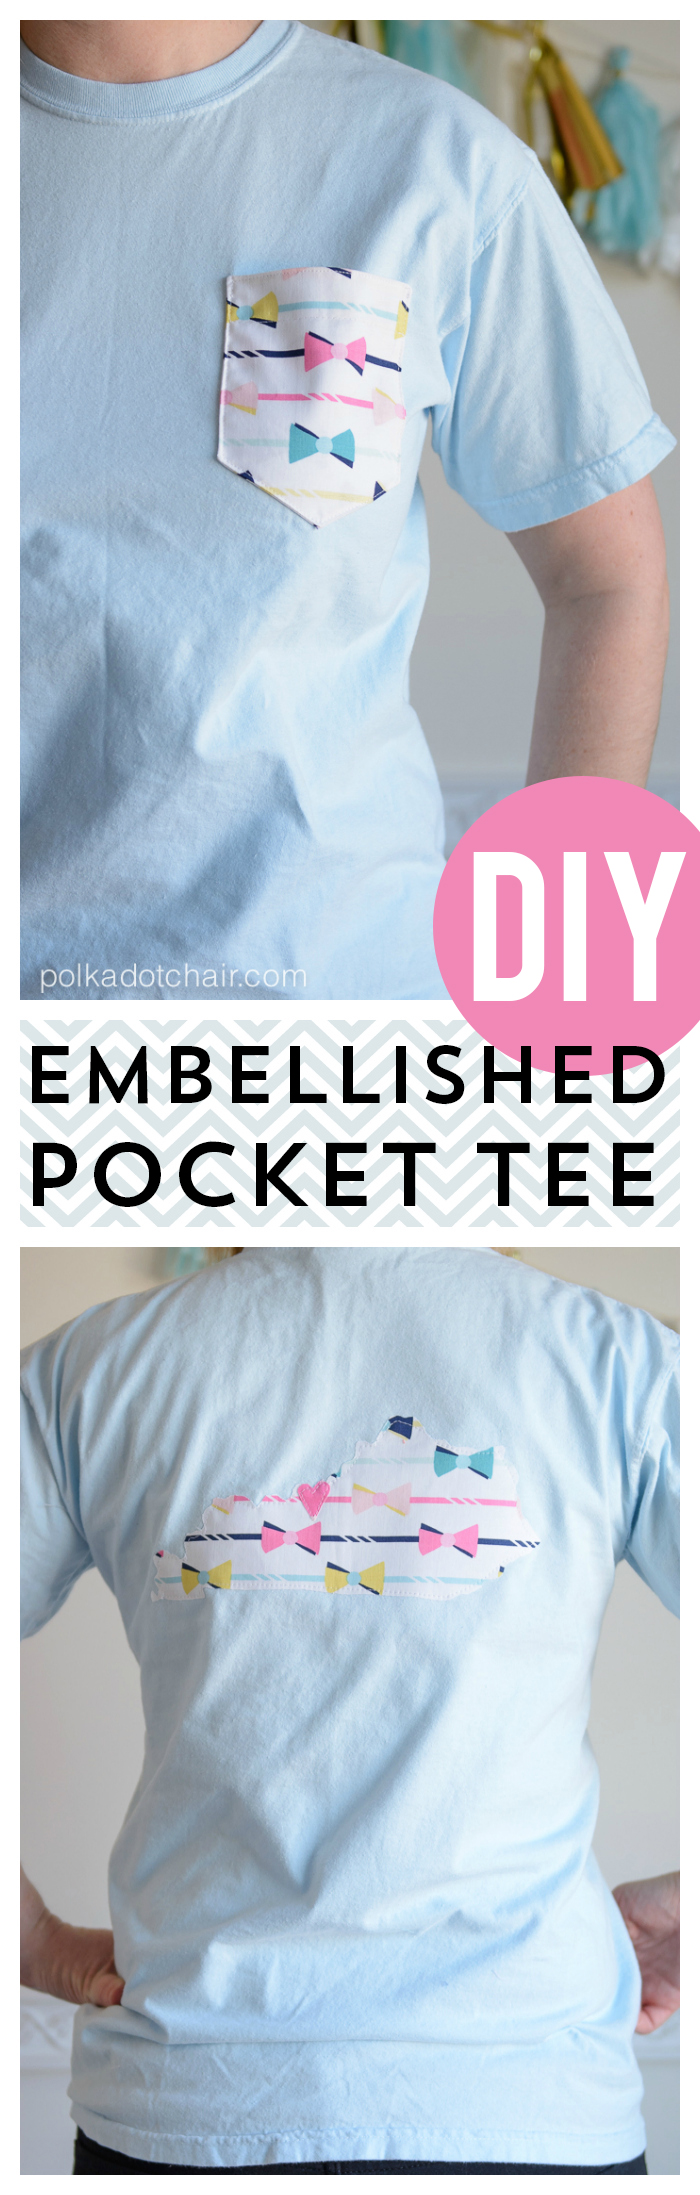 A fun way to dress up a plain t-shirt- How to make a pocket t-shirt